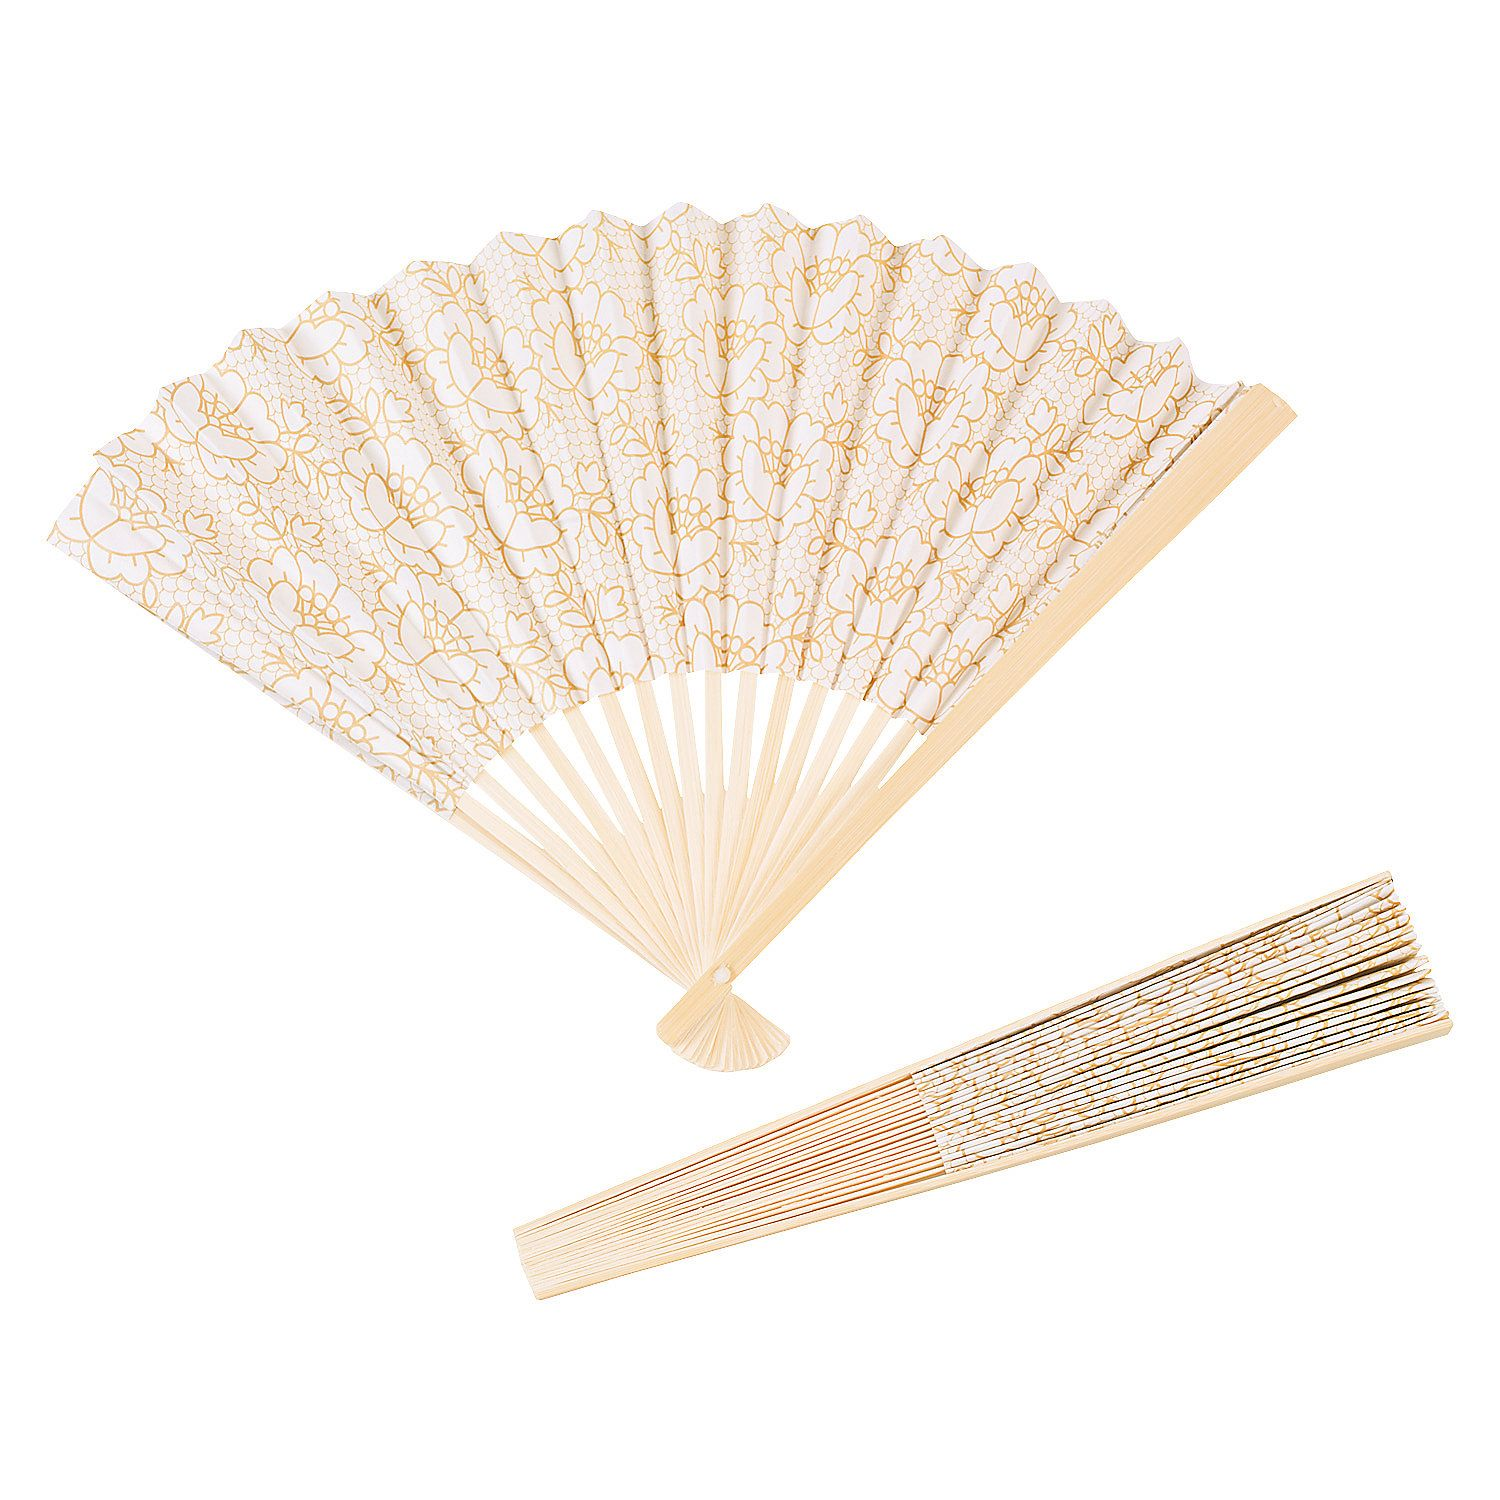 Vintage Lace Folding Fans | Shabby, Fans and Wedding